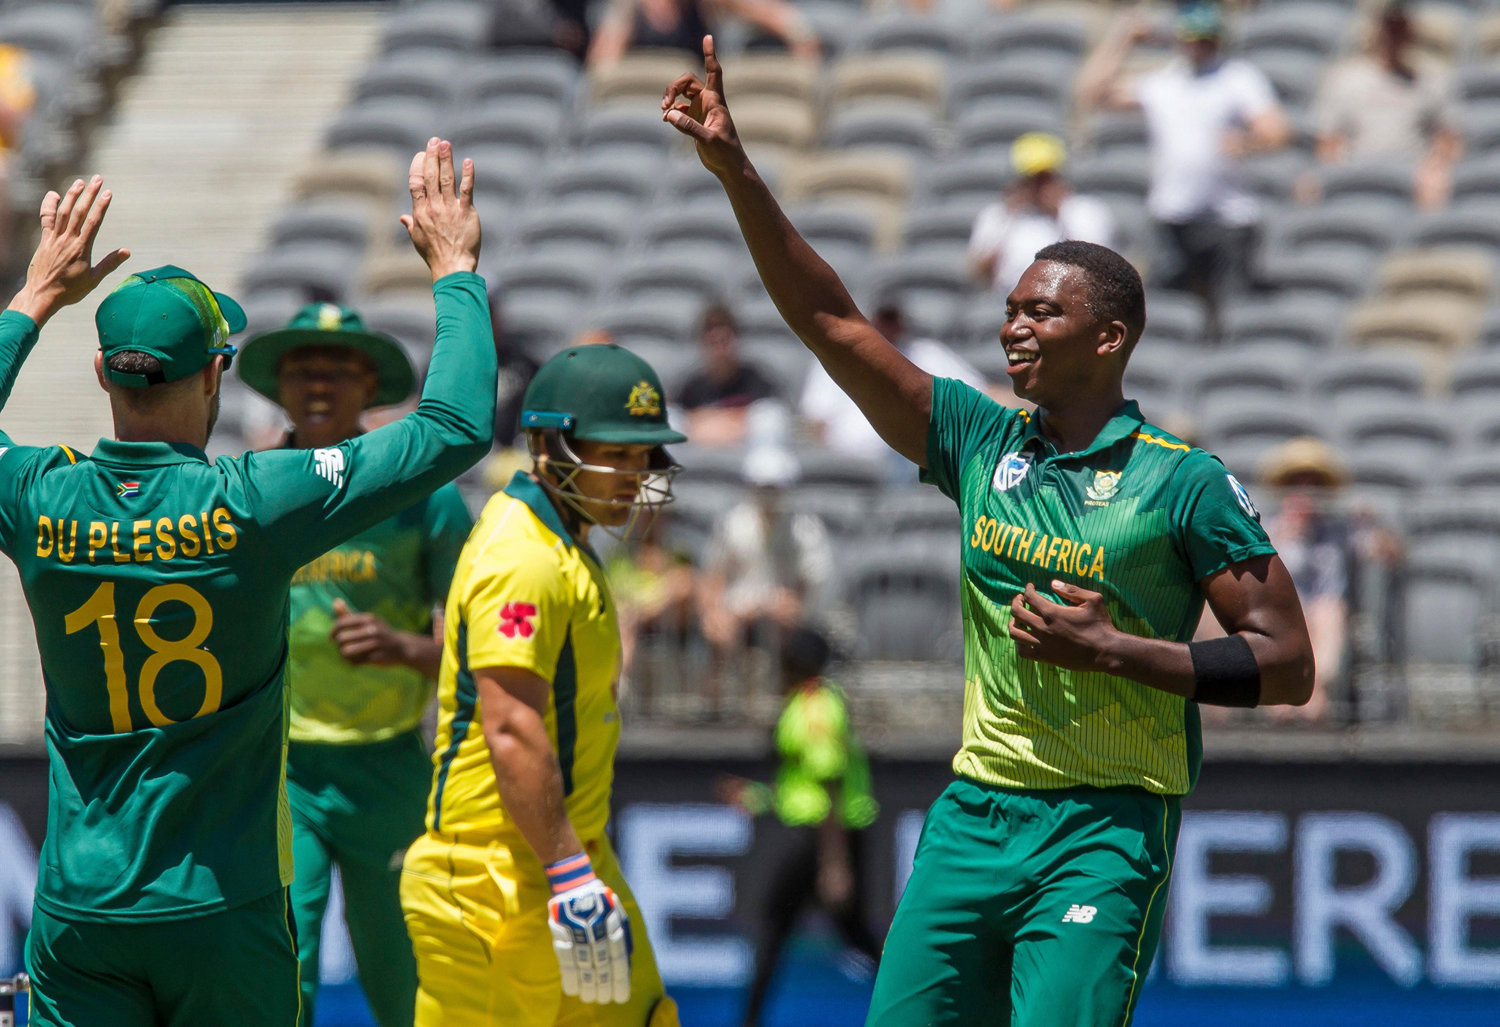 South Africa's Dale Steyn (2nd L-hatless) celebrates with teammates after taking a wicket during the first one-day international (ODI) cricket match between South Africa and Australia at the Optus Perth stadium in Perth on November 4, 2018. (Photo by TONY